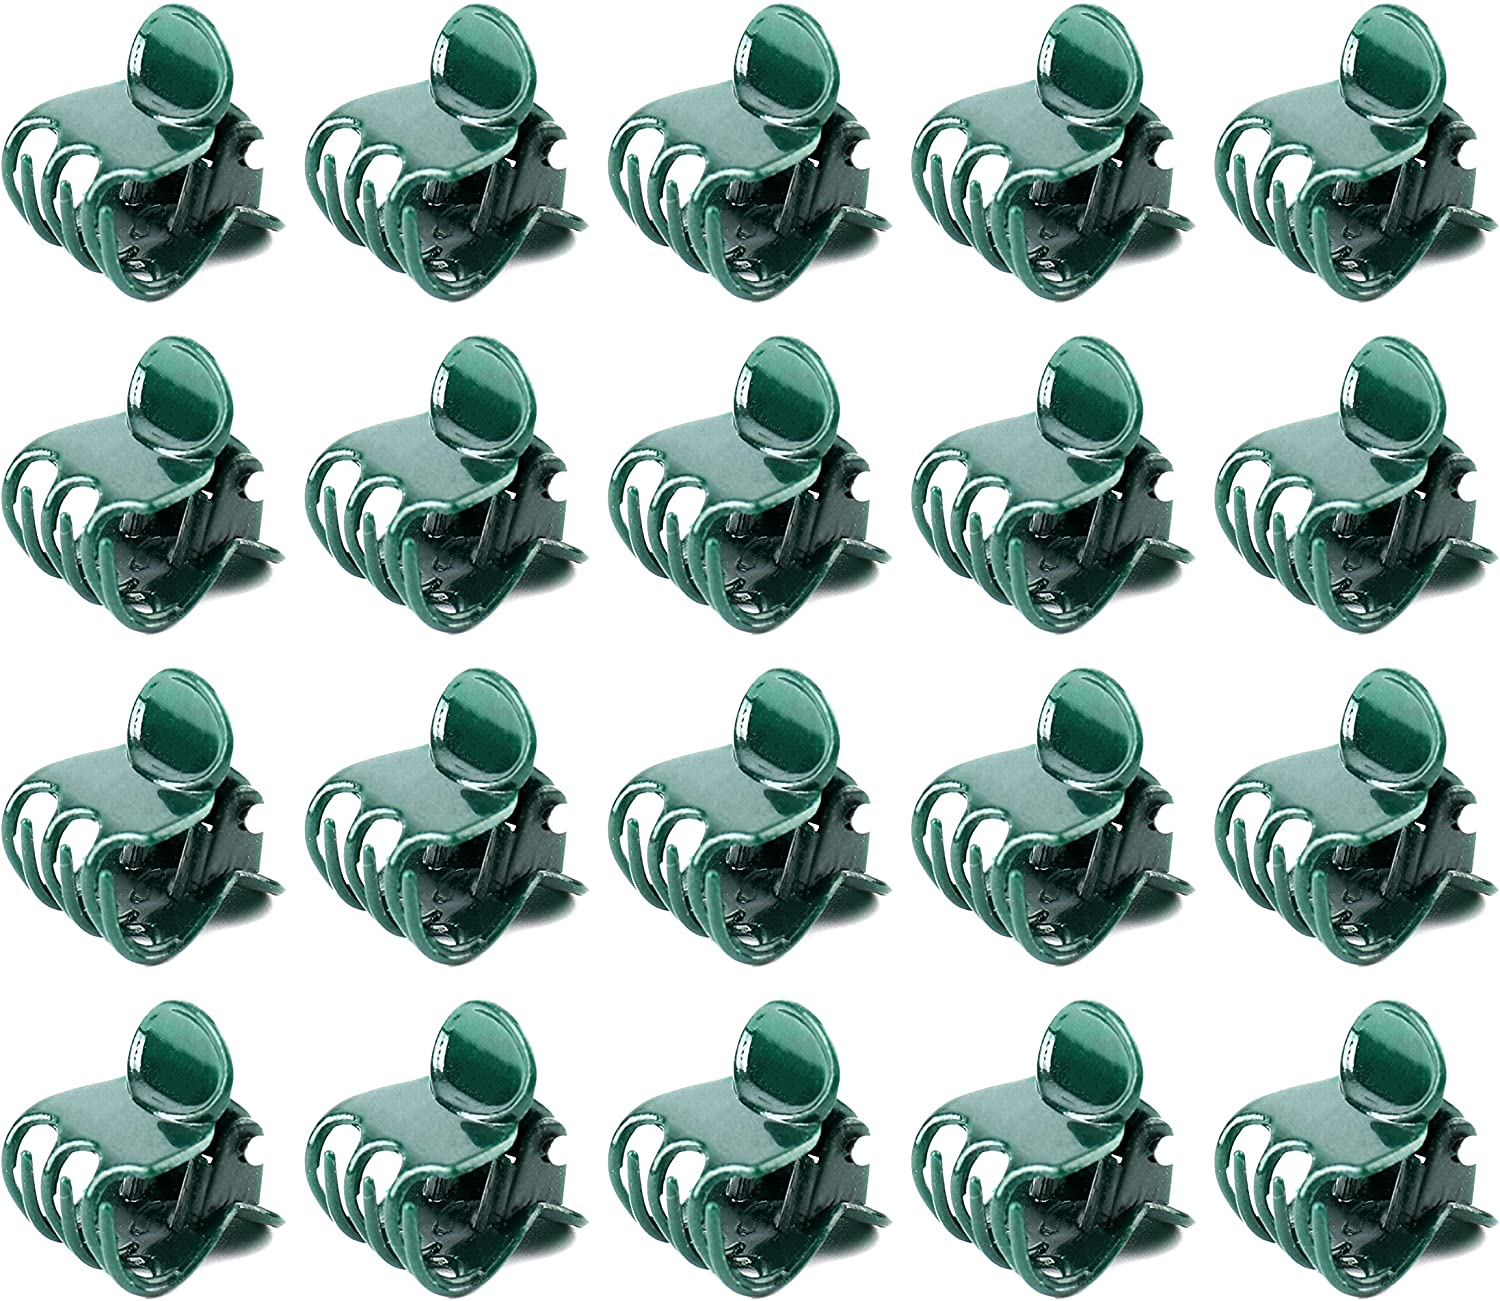 Fasmov 300 pcs Plant Clips Orchid Clips,Garden Flower Vine Clips,Plant Support Clips for Supporting Stems Vines Grow Upright